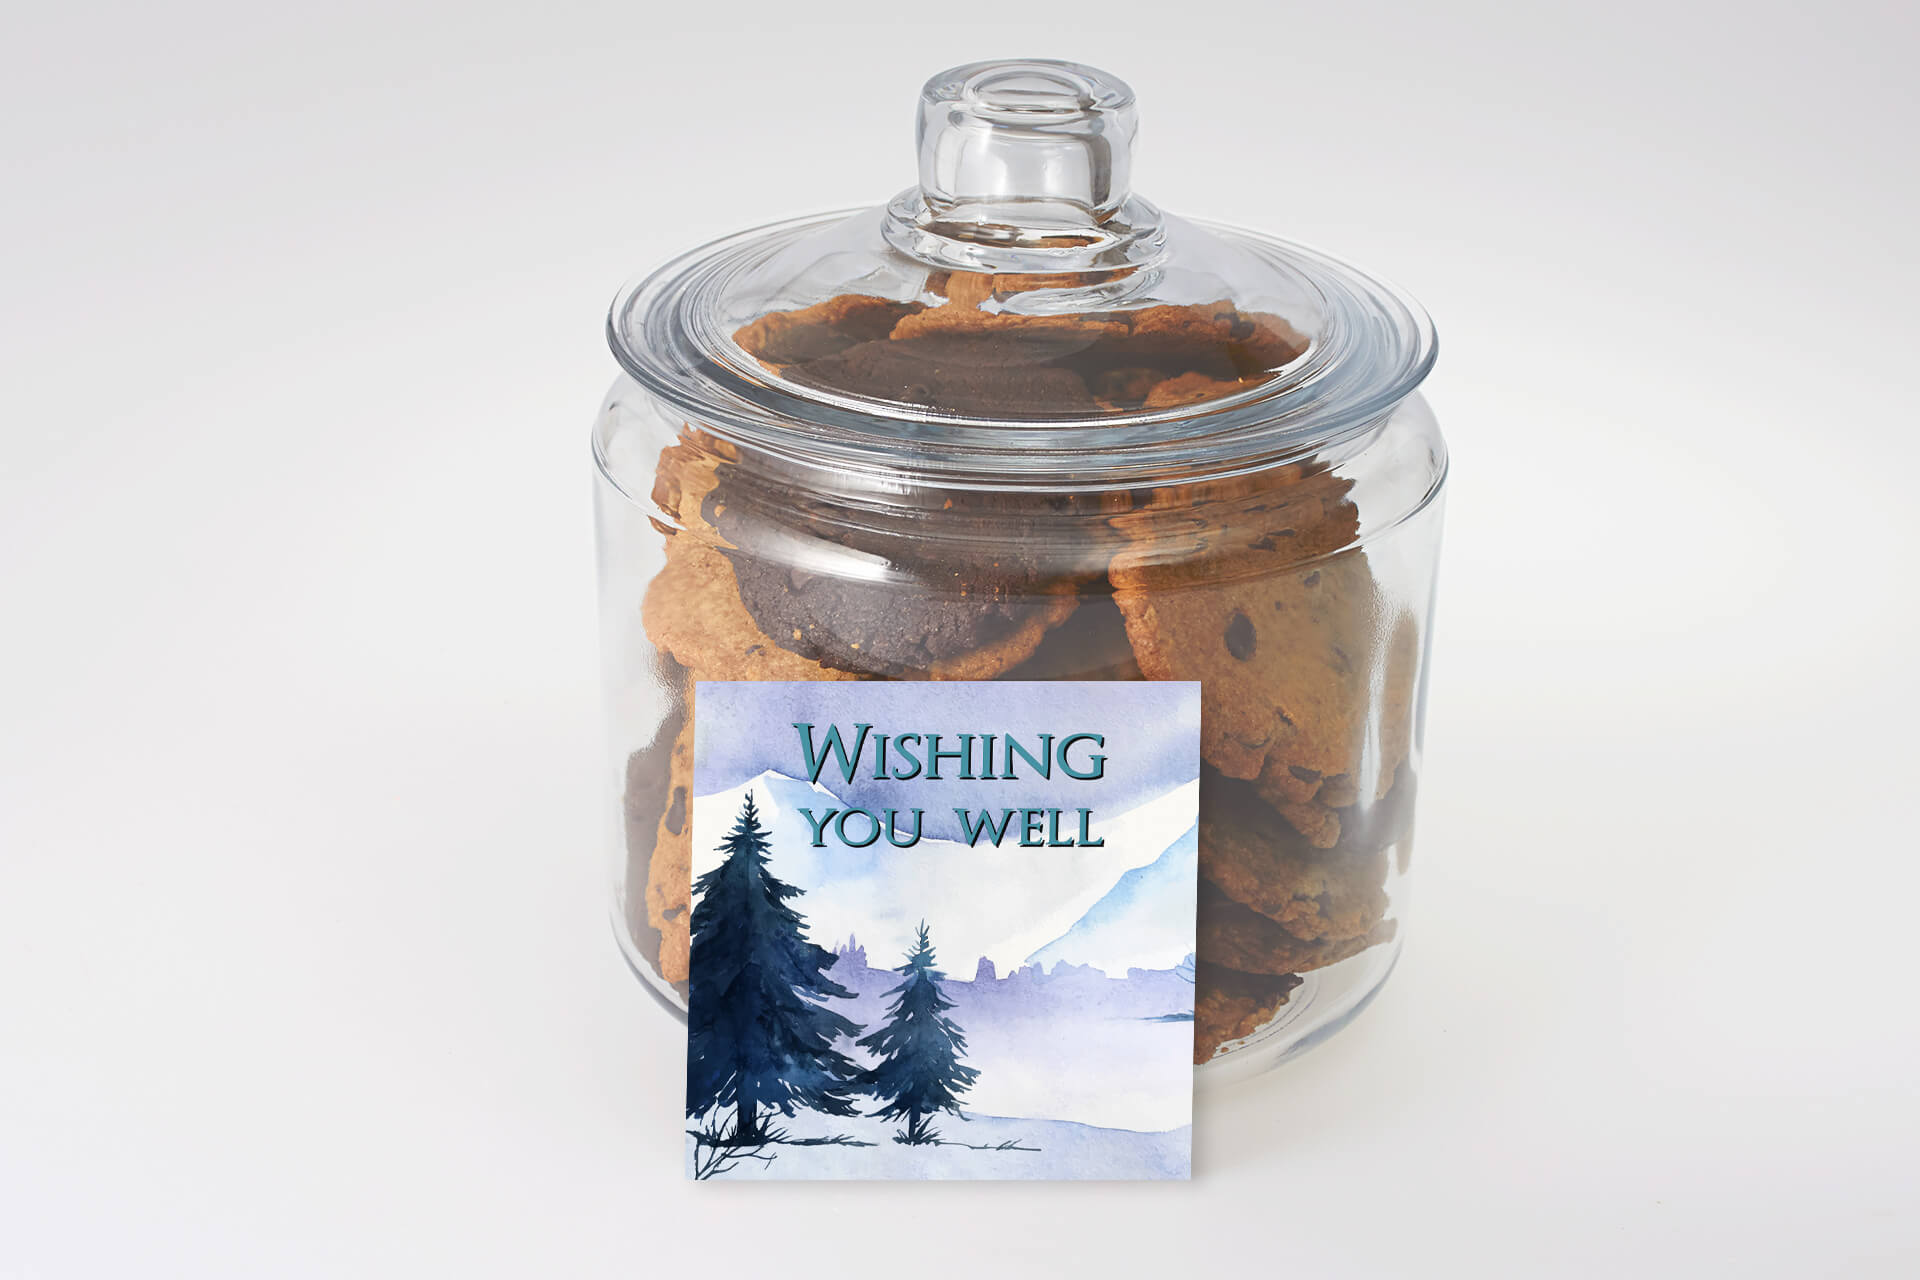 Get Well Cookie Jar Delivered in the GTA